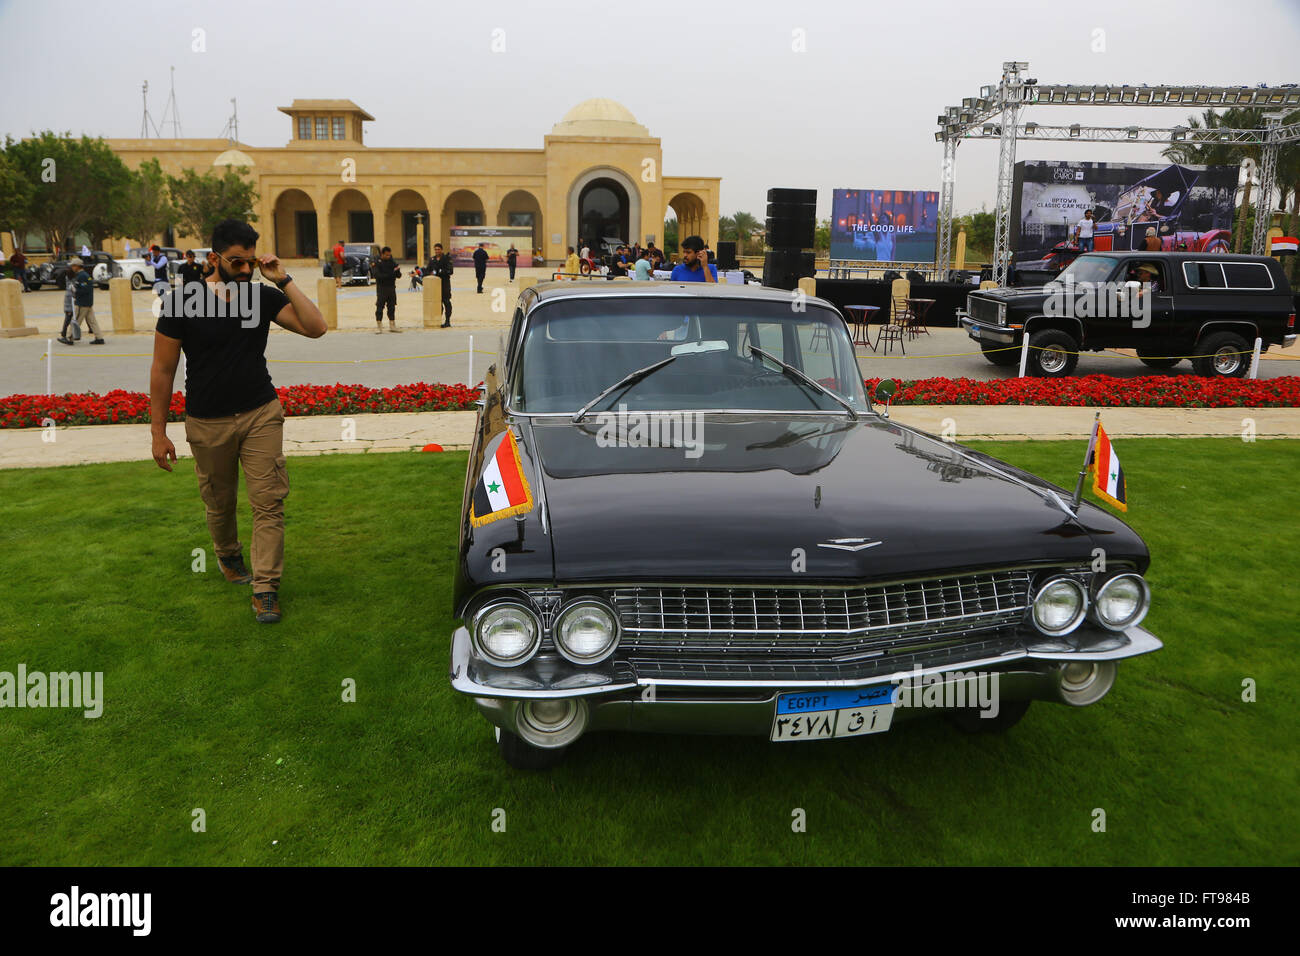 Cairo, Egypt. 25th Mar, 2016. A man walks past the car previously owned by Egypt's former president Gamal Abdel - Stock Image